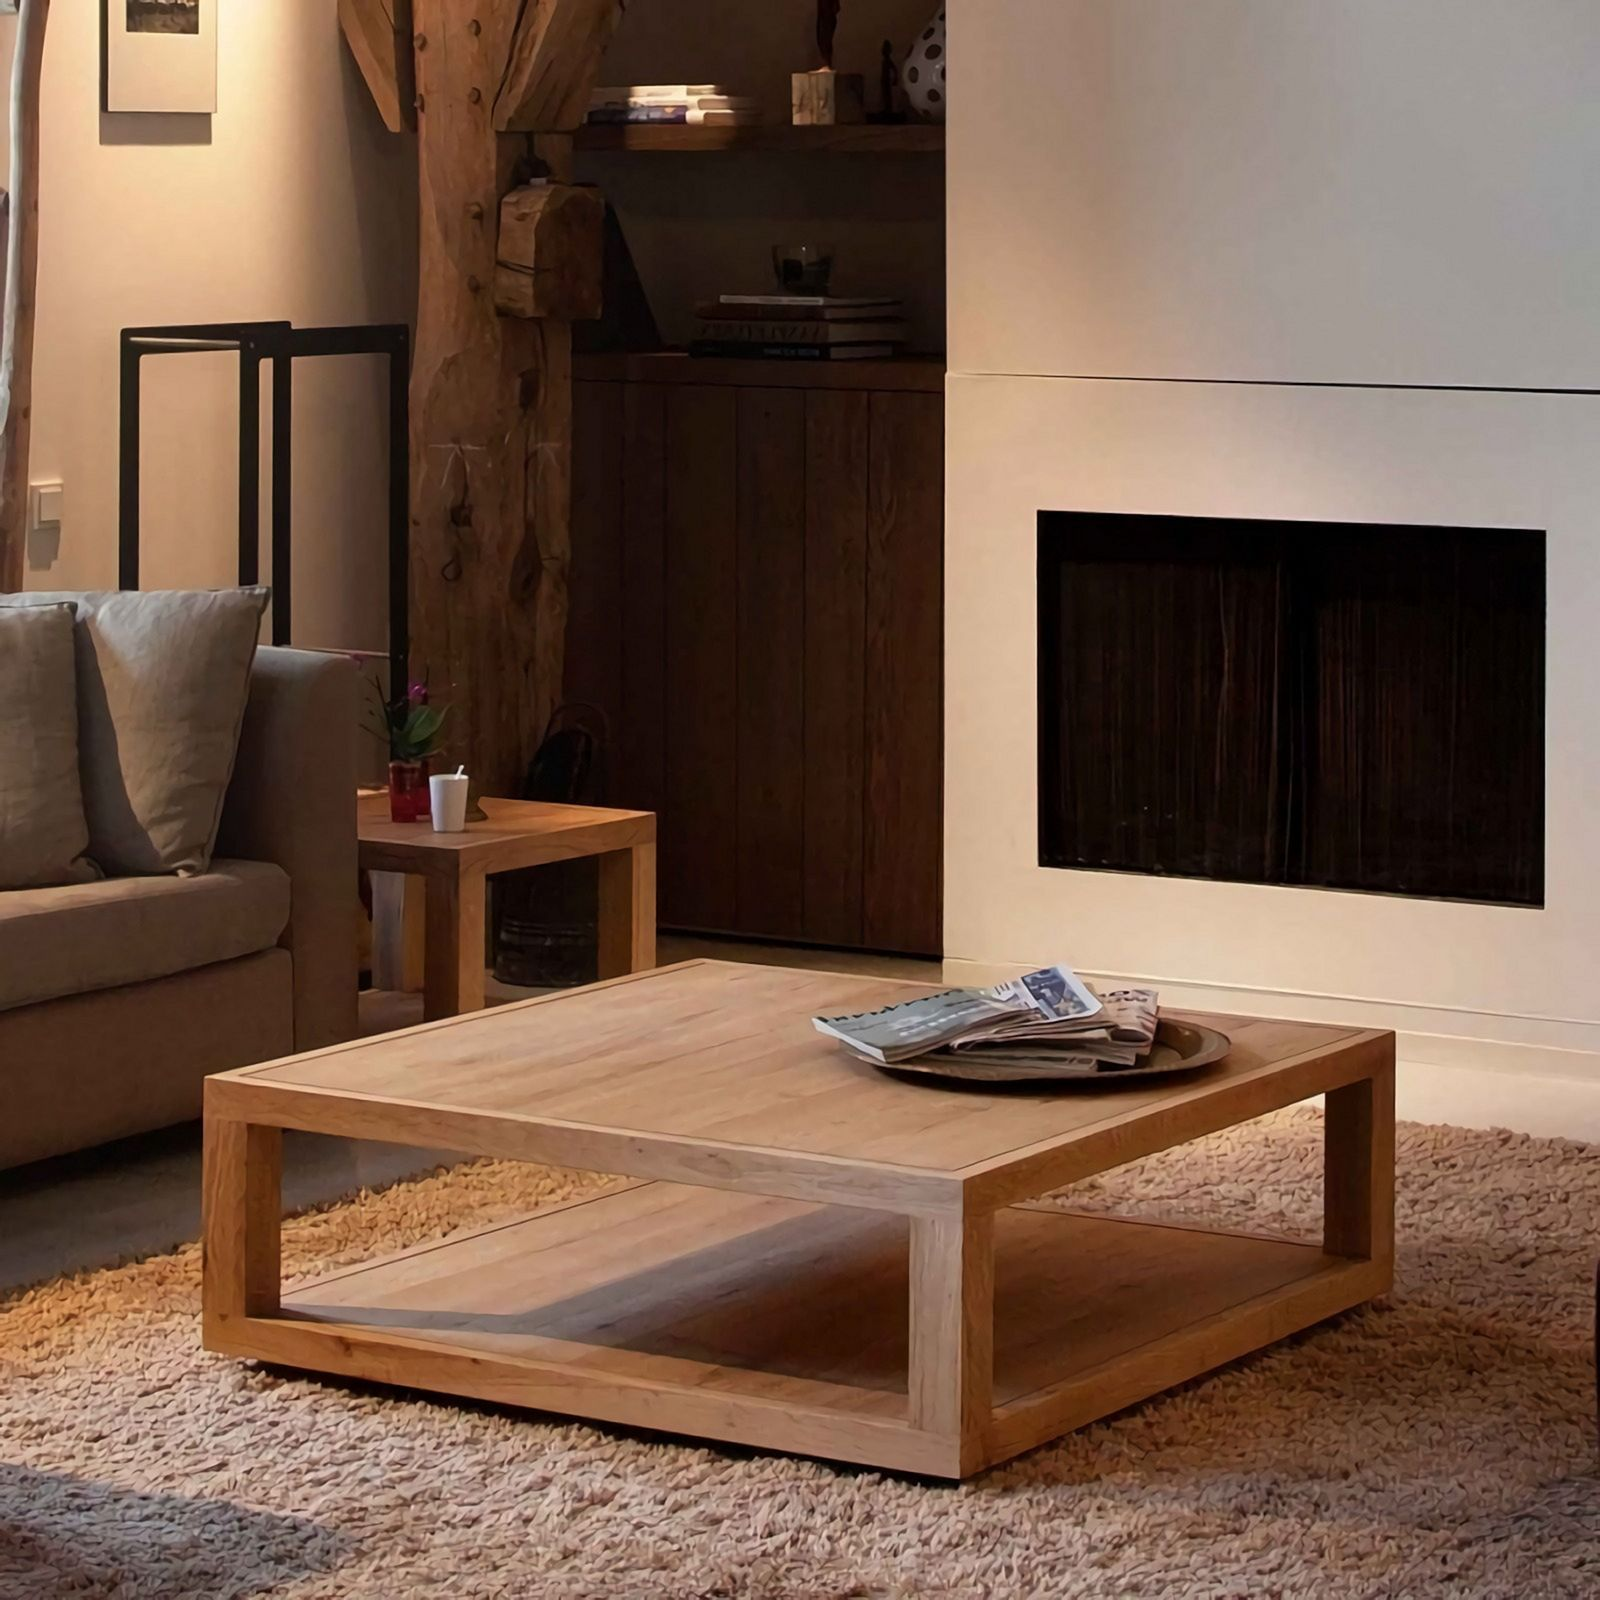 Best 20 Simple Wooden Furniture For Rustic Living Room Ideas Https Dsgndcr Com Home Inter Wooden Living Room Furniture Design Wooden Square Living Room Table